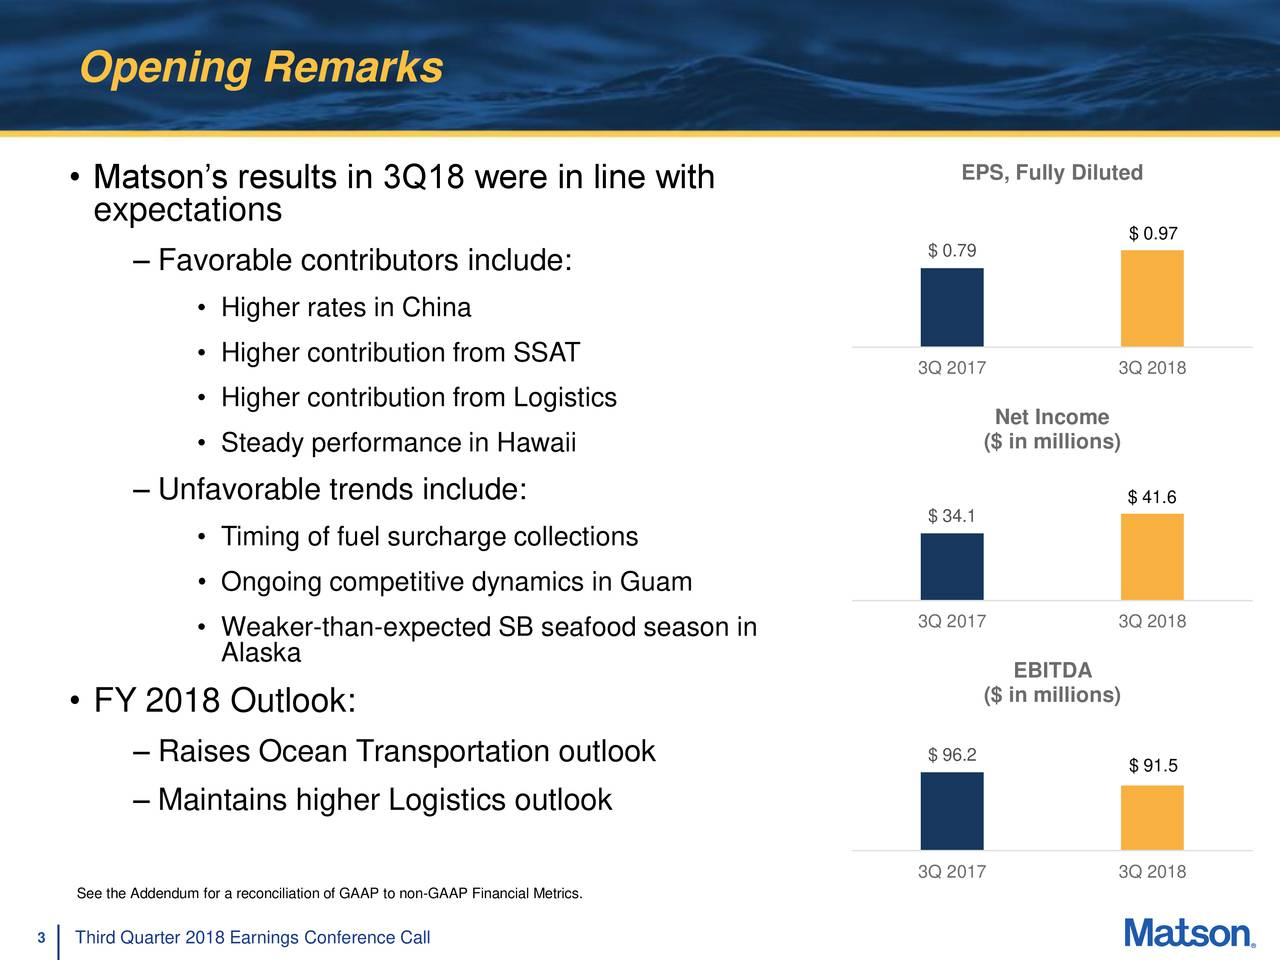 • Matson's results in 3Q18 were in line with EPS, Fully Diluted expectations $ 0.97 $ 0.79 – Favorable contributors include: • Higher rates in China • Higher contribution from SSAT 3Q 2017 3Q 2018 • Higher contribution from Logistics Net Income • Steady performance in Hawaii ($ in millions) – Unfavorable trends include: $ 41.6 $ 34.1 • Timing of fuel surcharge collections • Ongoing competitive dynamics in Guam 3Q 2017 3Q 2018 • Weaker-than-expected SB seafood season in Alaska EBITDA • FY 2018 Outlook: ($ in millions) – Raises Ocean Transportation outlook $ 96.2 $ 91.5 – Maintains higher Logistics outlook 3Q 2017 3Q 2018 See the Addendum for a reconciliation of GAAP to non-GAAP Financial Metrics. 3 Third Quarter 2018 Earnings Conference Call